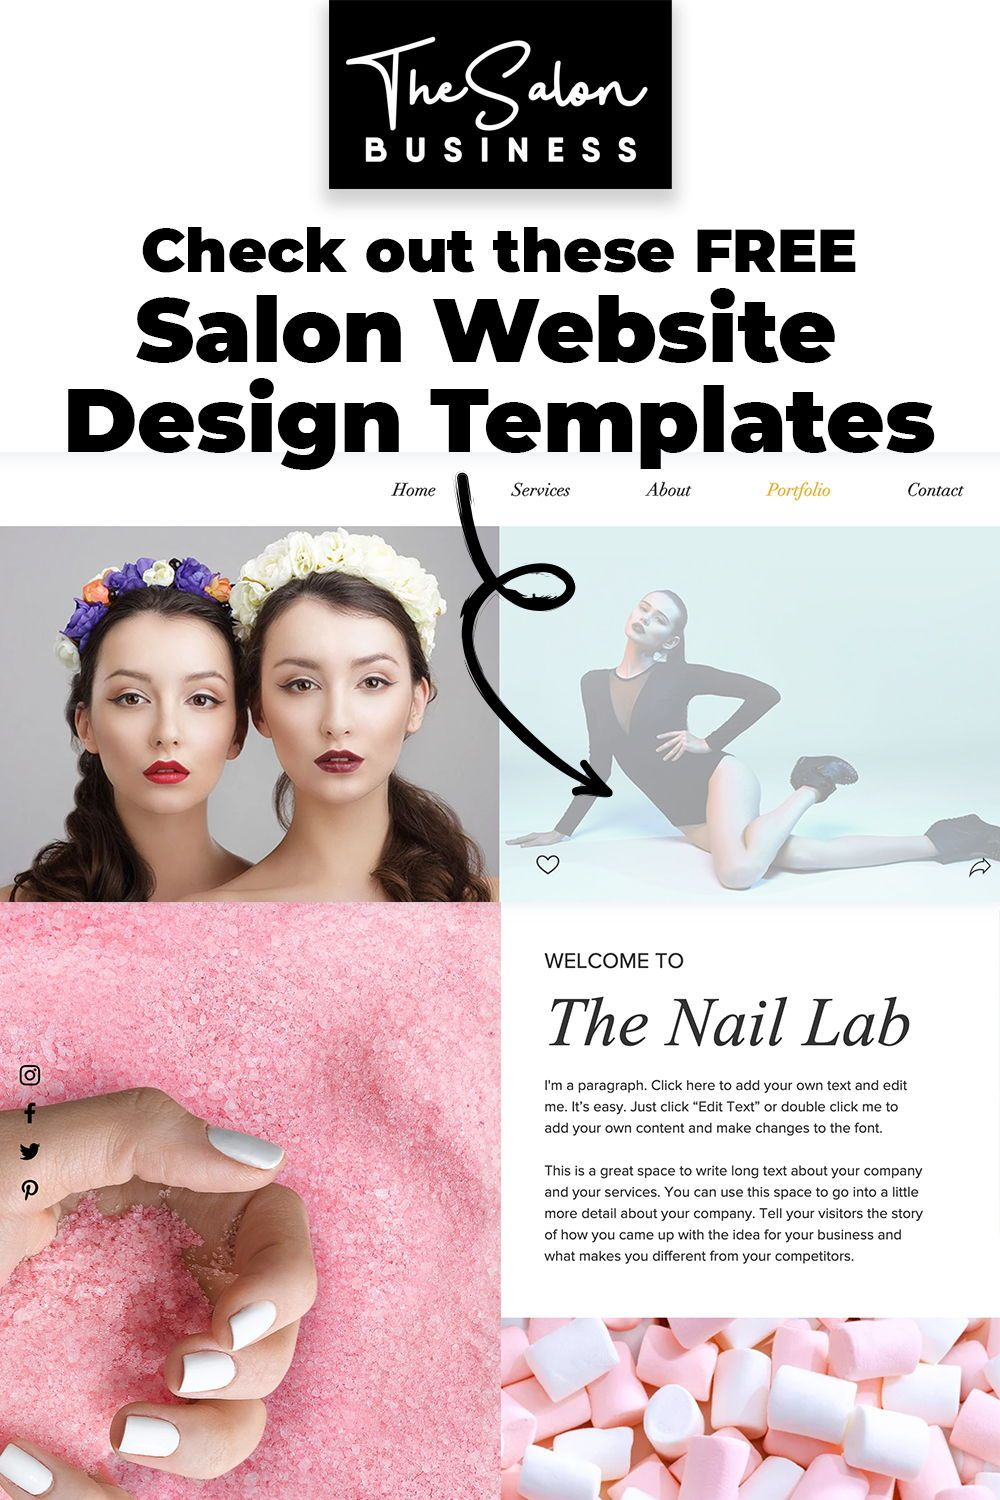 Free Salon Website Teamples. Check out these list of salon